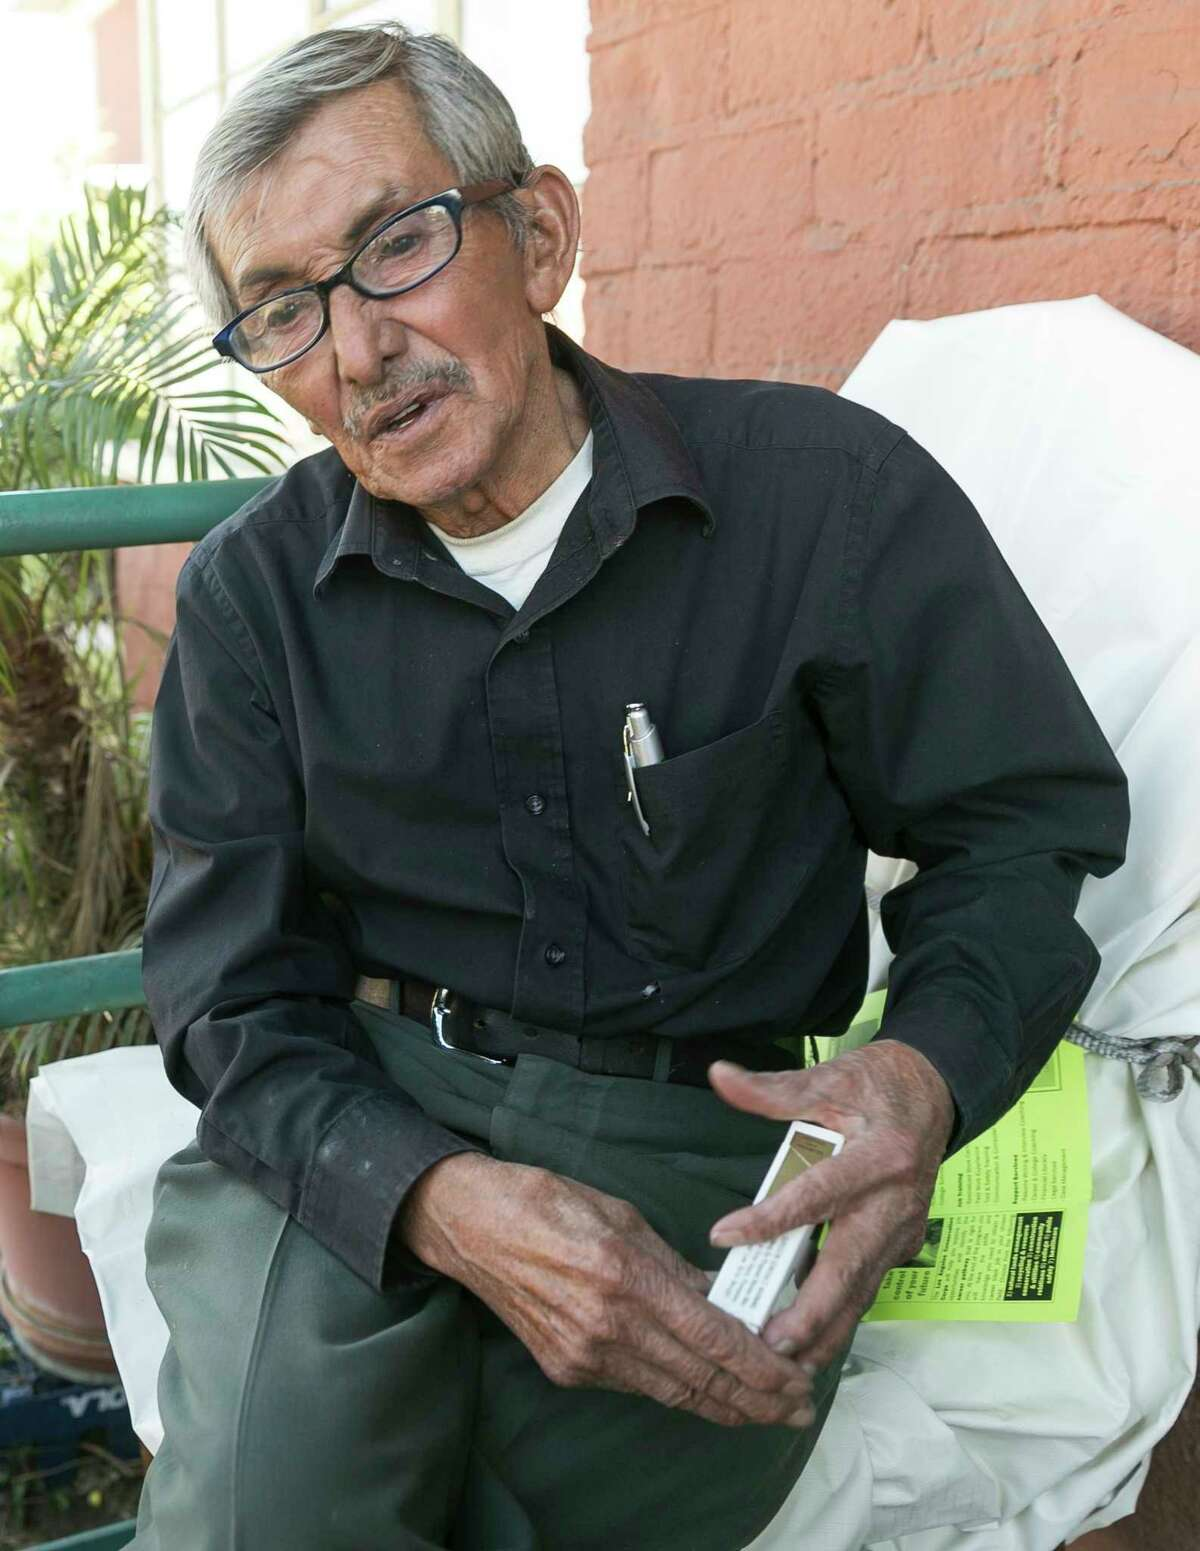 "Resident Juan Manuel Cabrera, 77, who has been smoking for 67 years, says no federal edict is going to stop him from lighting up in his own house at the William Mead Homes in Los Angeles, Thursday, Nov. 12, 2015. ""When I'm in my house I don't bother nobody and nobody bothers me,"" Cabrera said as he relaxed on his porch with his chubby brown Chihuahua, Dunko, an ashtray within arm's reach and a pack of Marlboro Lights in his pocket. The federal government's proposal Thursday to ban smoking inside and out of public housing nationwide got a decidedly mixed reaction from the people most affected."